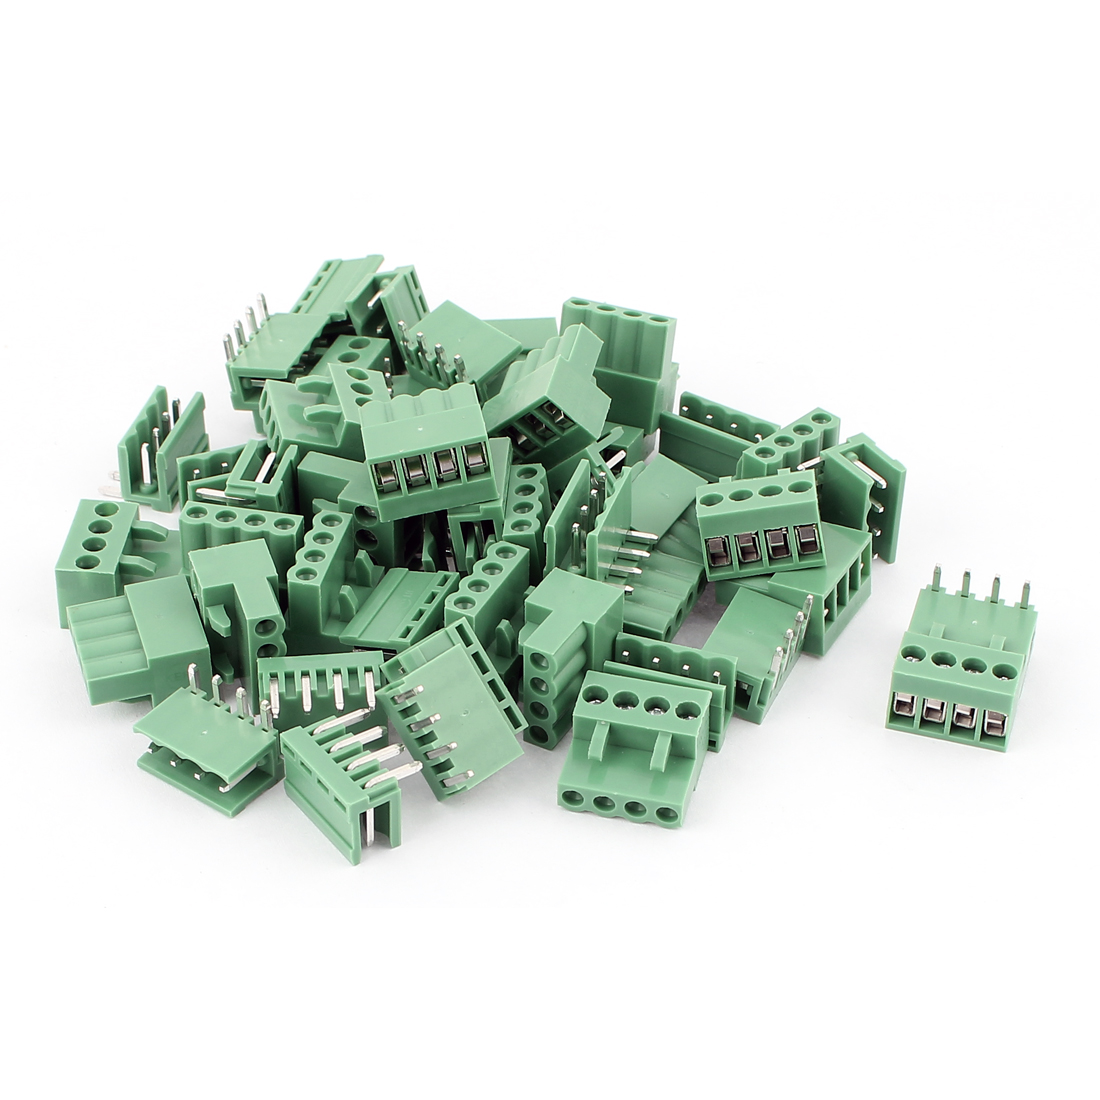 24 Pair 3.96mm Pitch 4way/pin Screw PCB Pluggable Terminal Block Connector